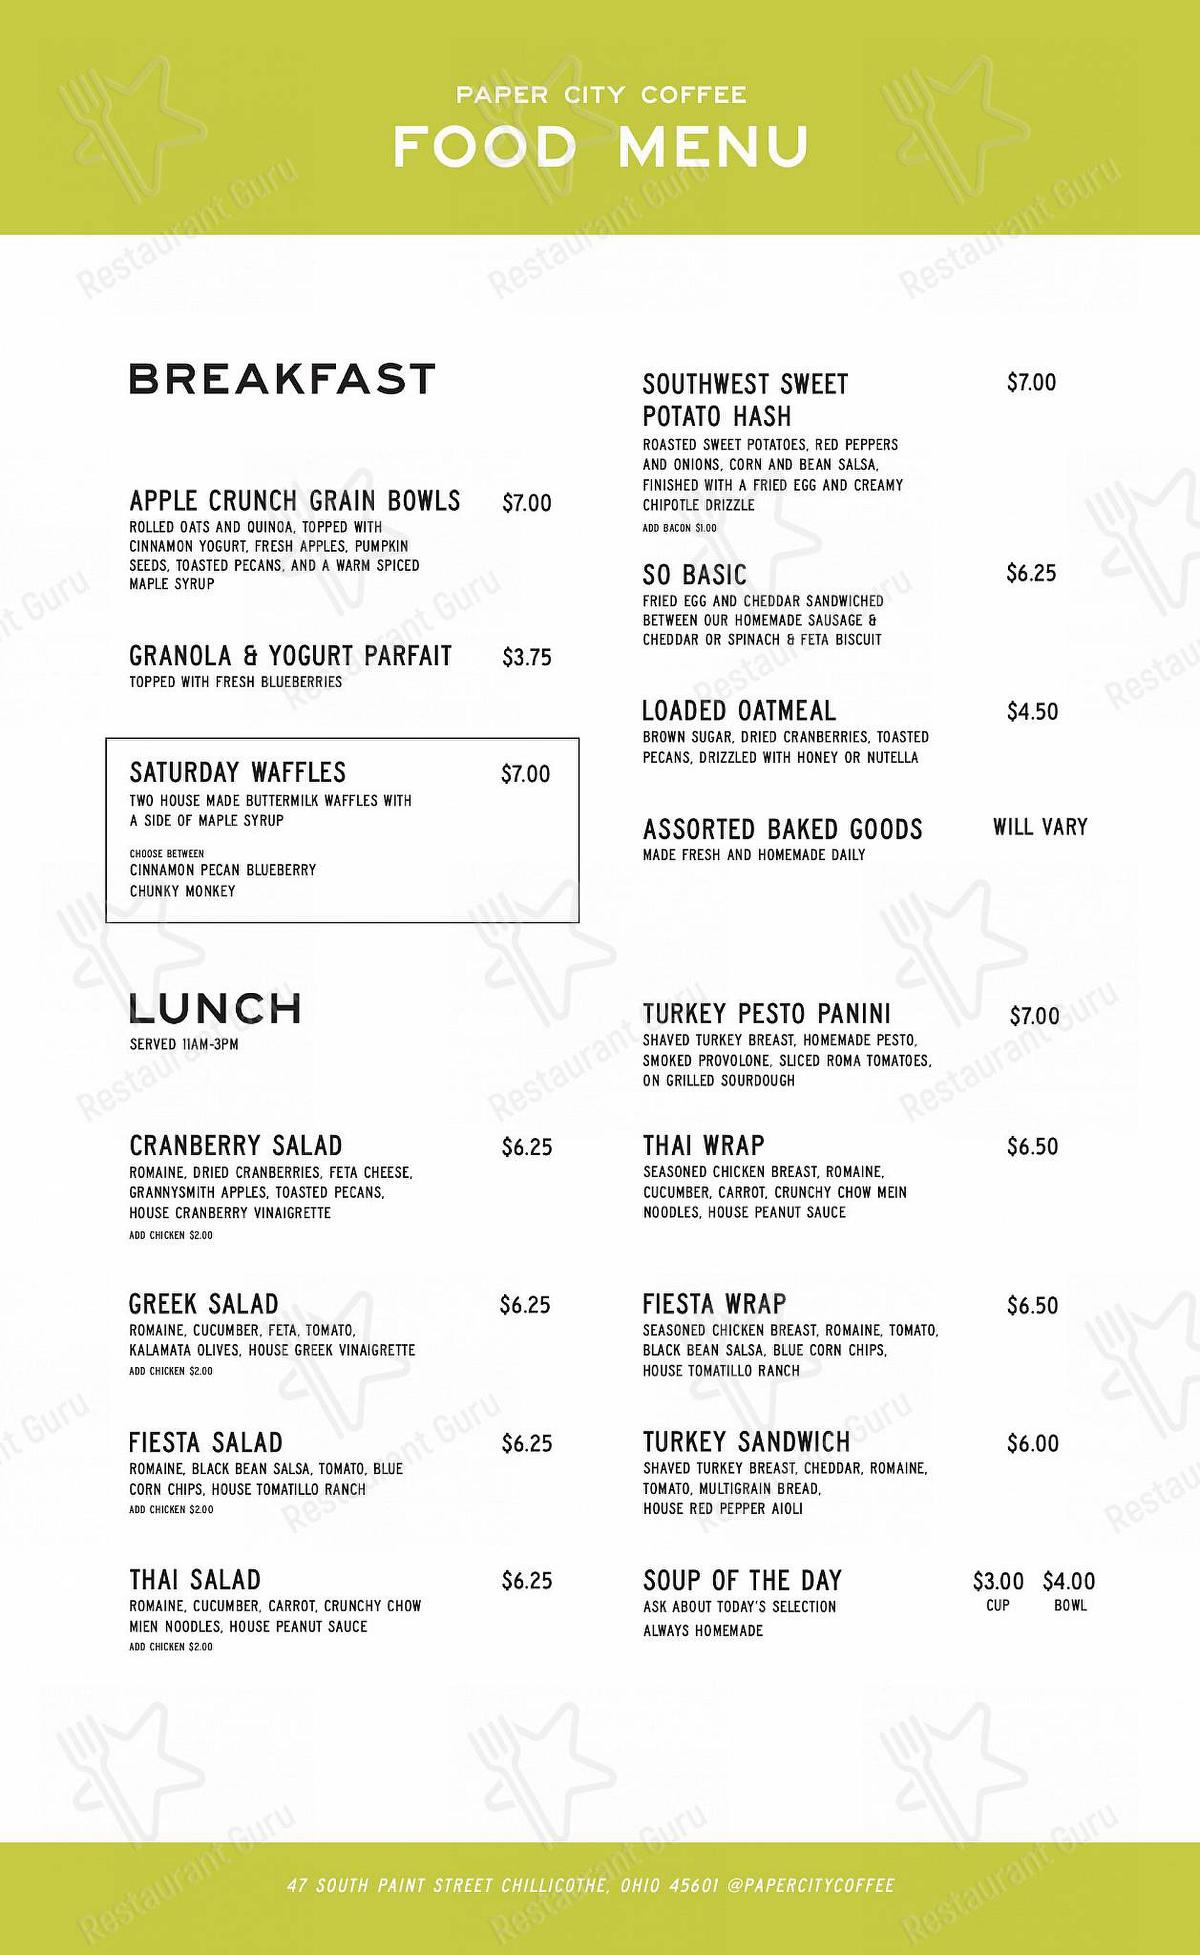 Paper City Coffee menu - meals and drinks